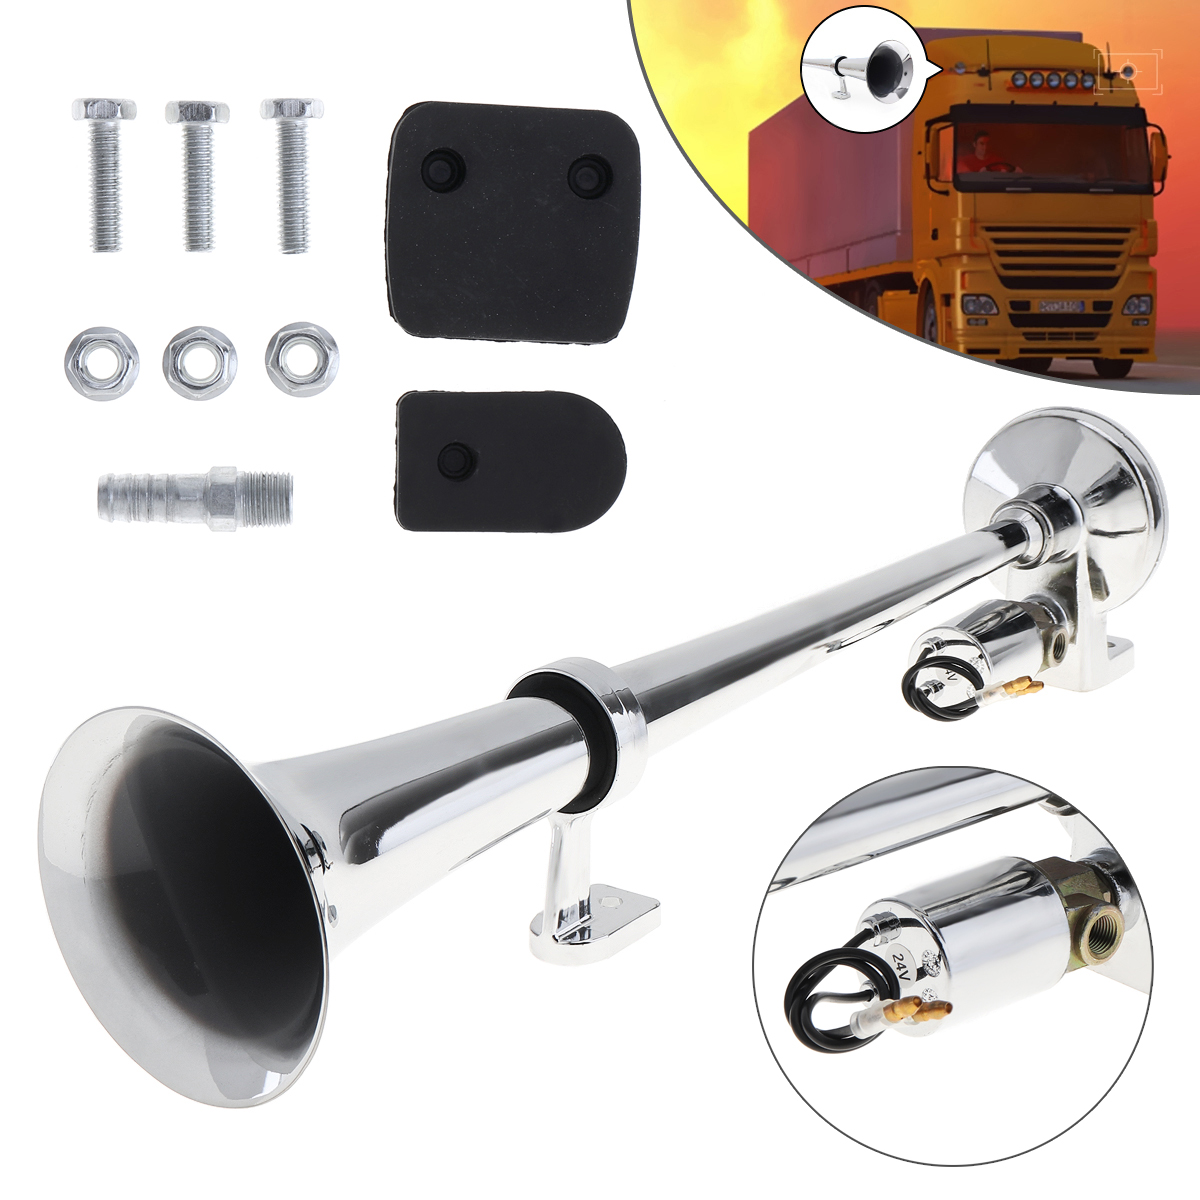 17Inch Chrome Plated ZINC Universal 150dB Super Loud Single Trumpet Car Air Operated Horn for Automobiles Truck Boat